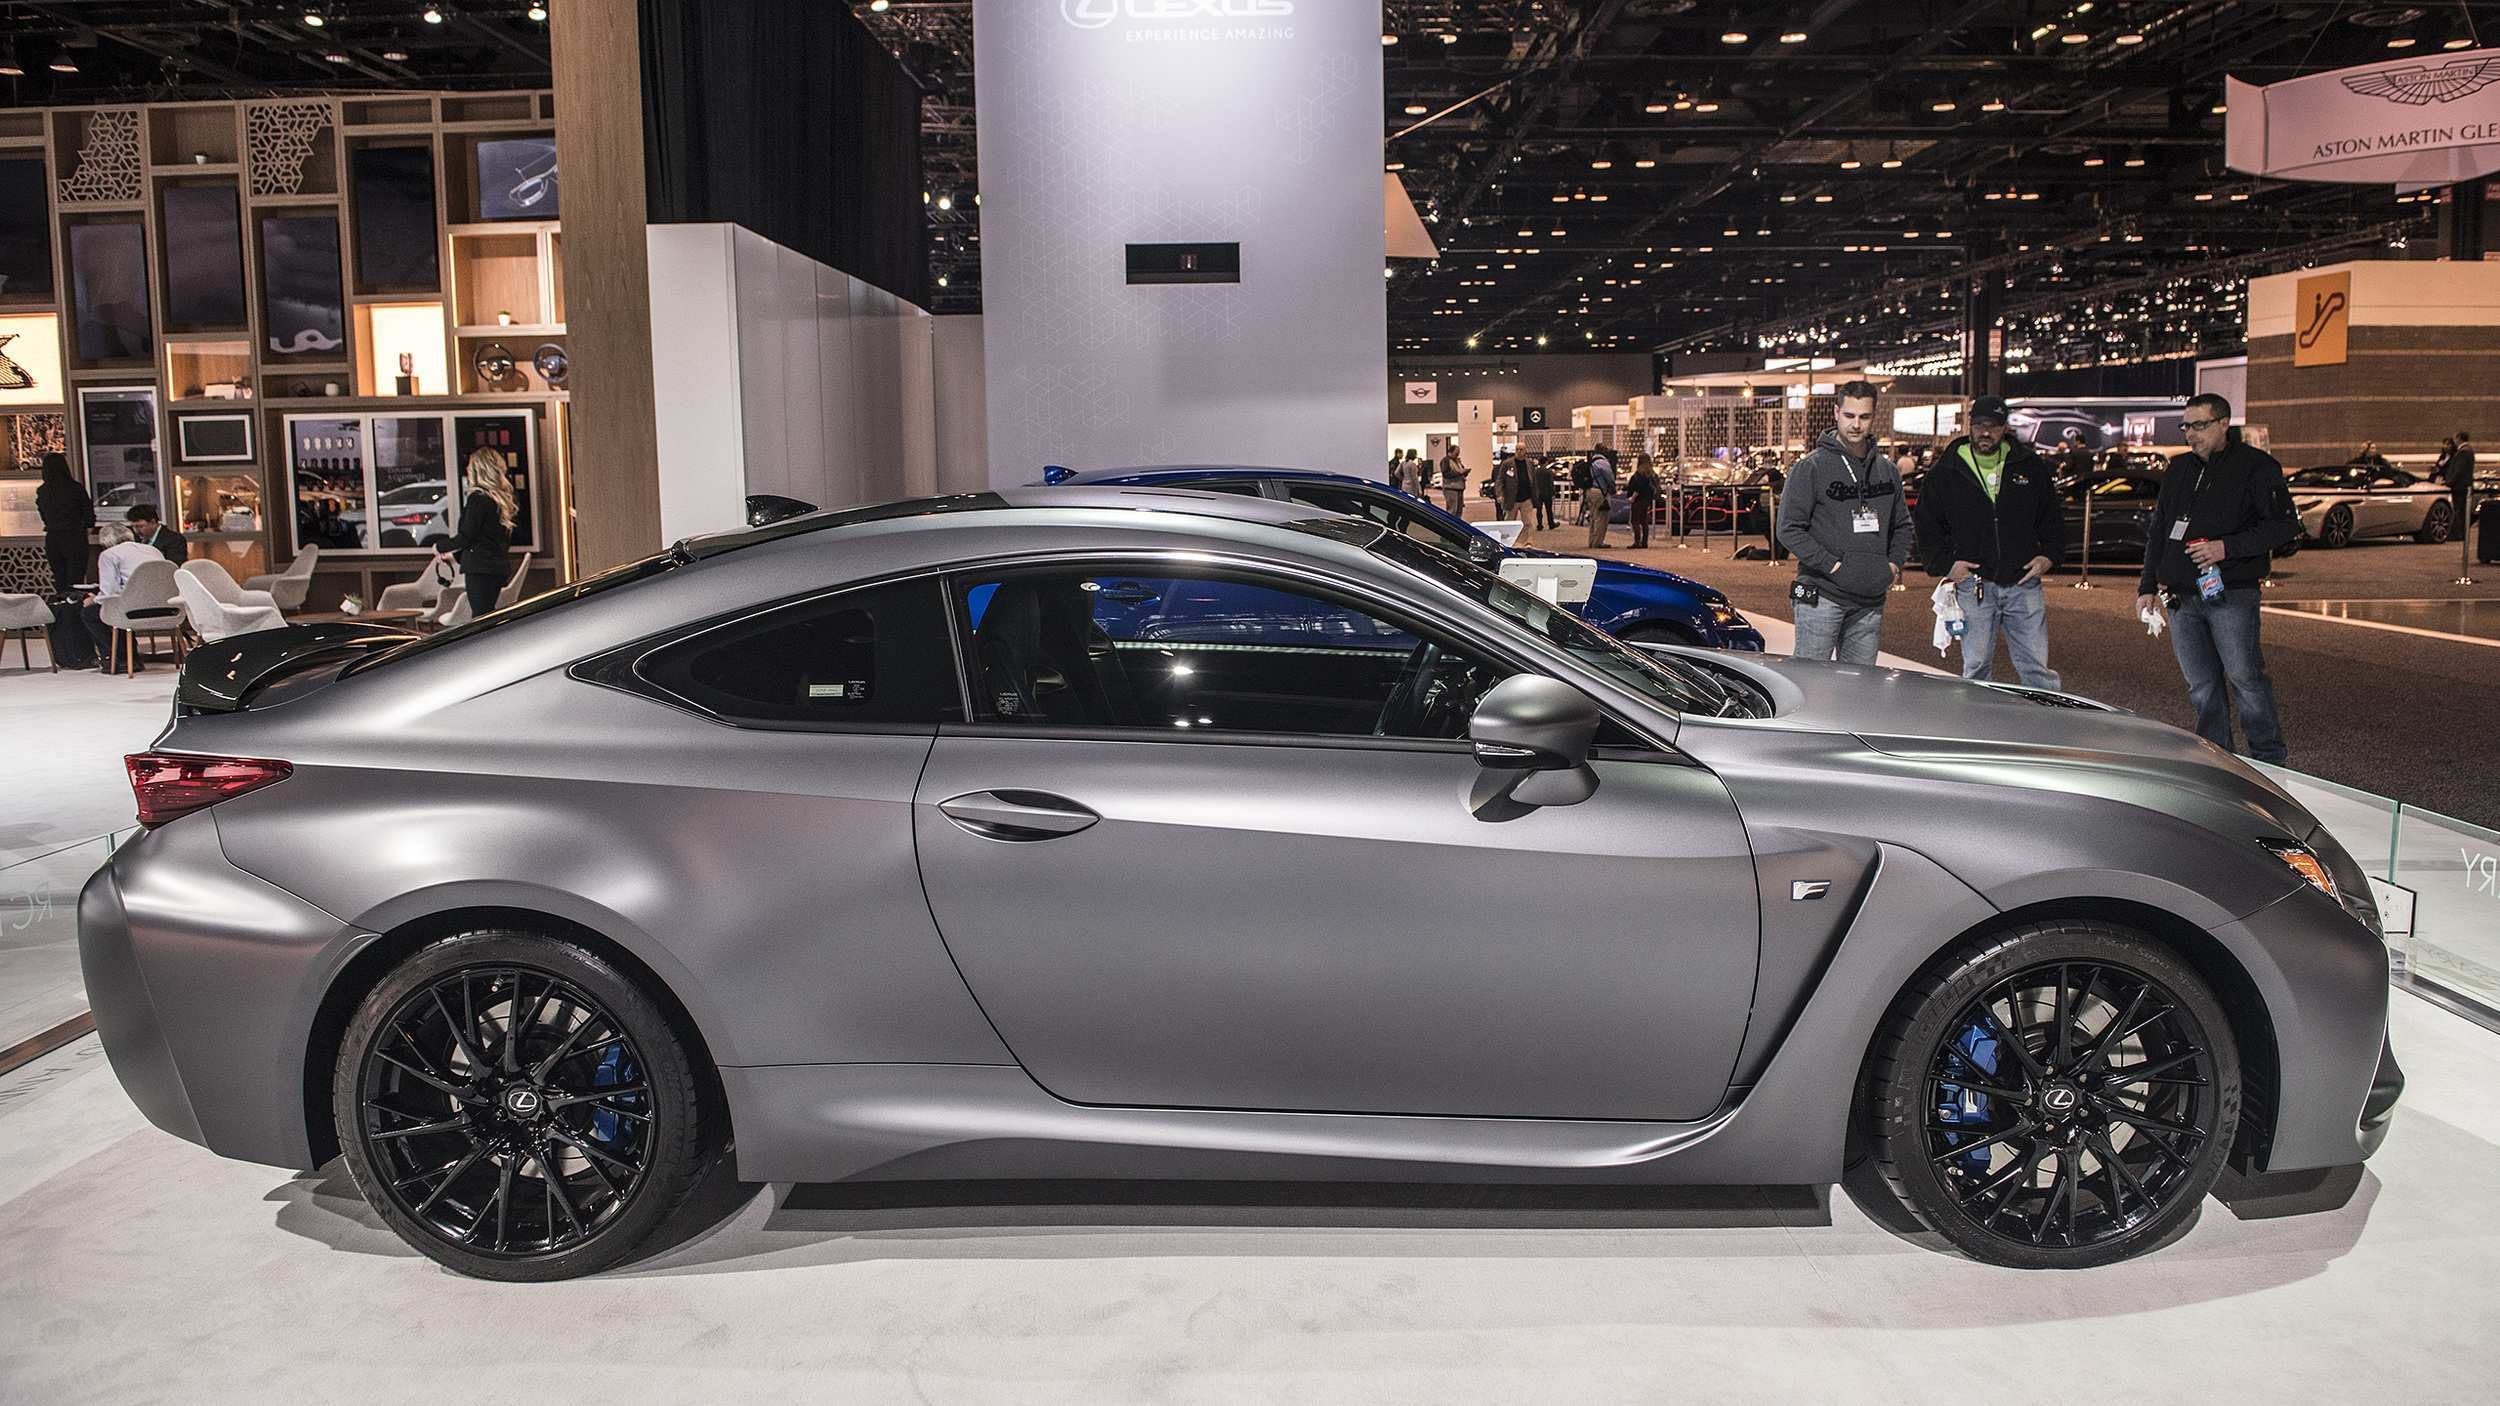 76 All New Lexus Rcf 2019 Price